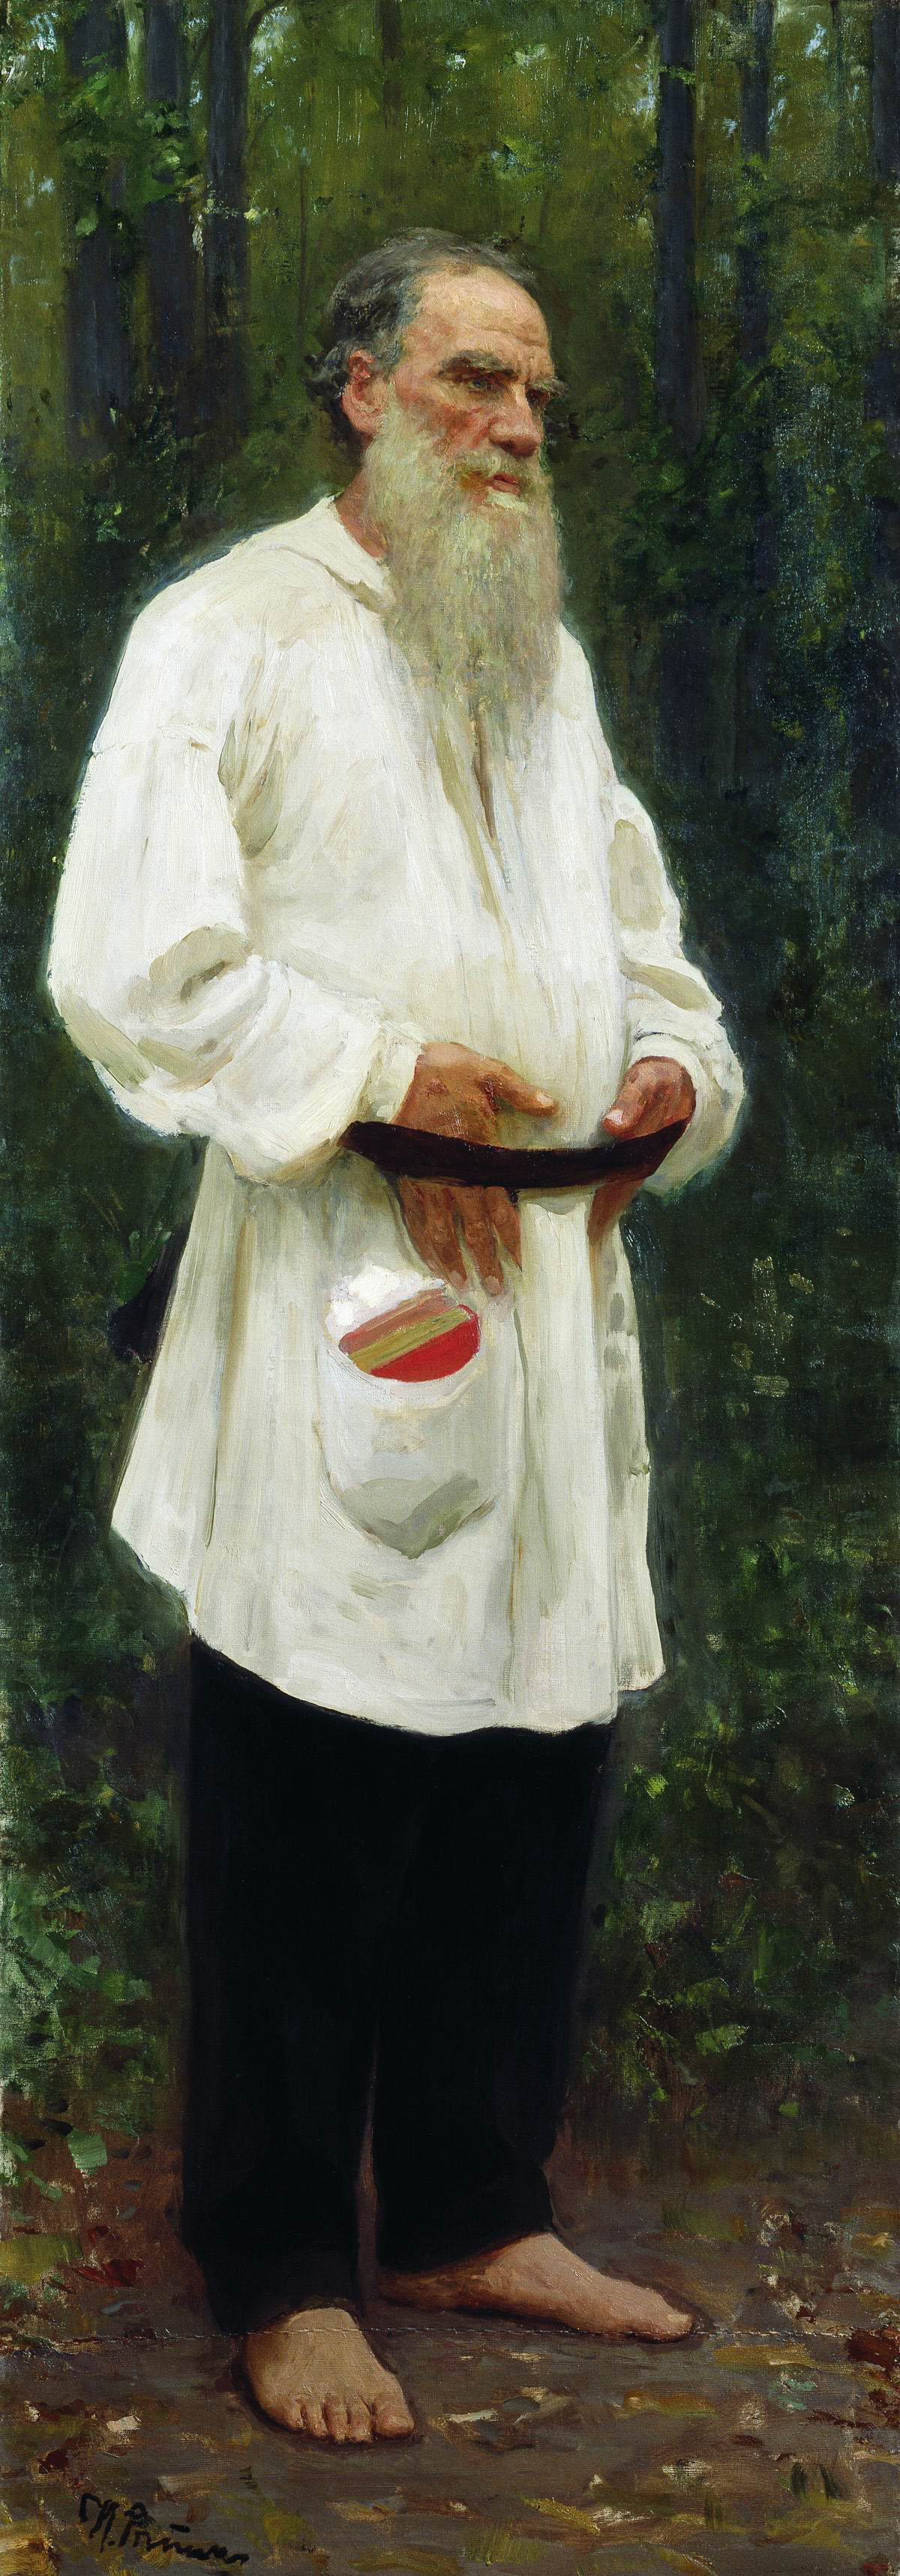 Tolstoy Dressed In Peasant Clothing by Ilya Repin